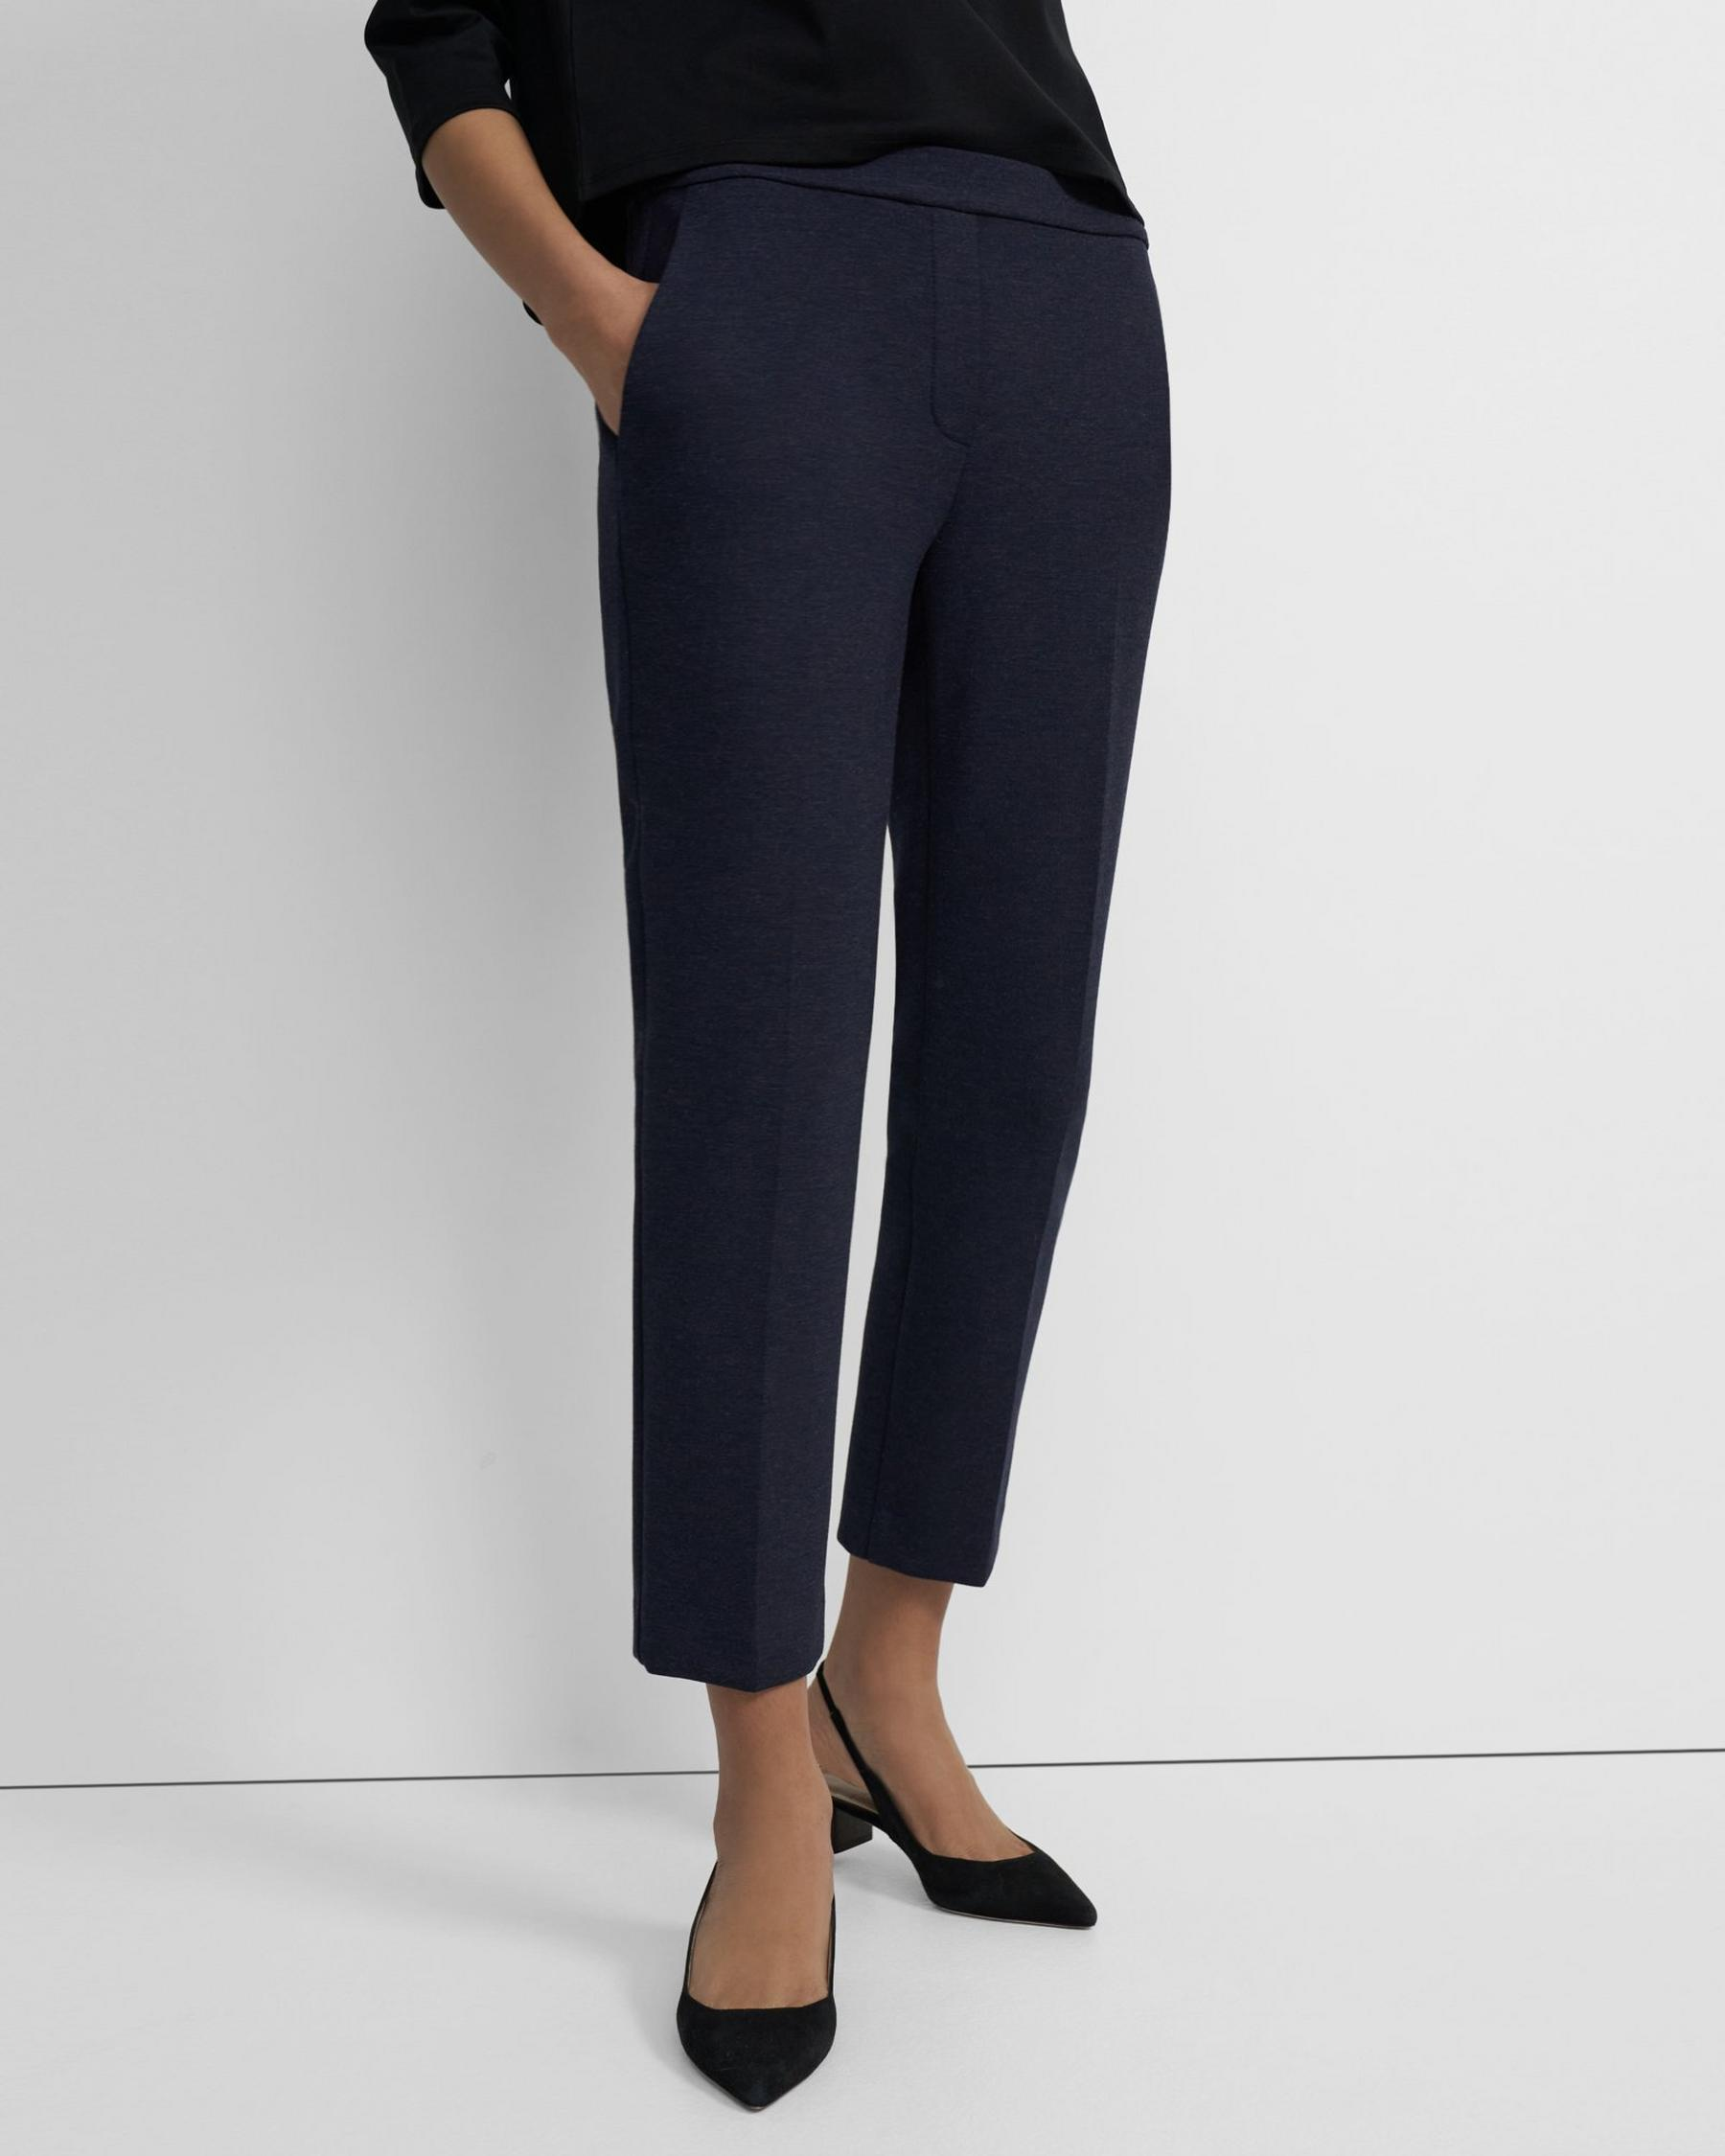 Treeca Pull-On Pant in Double-Knit Jersey 3